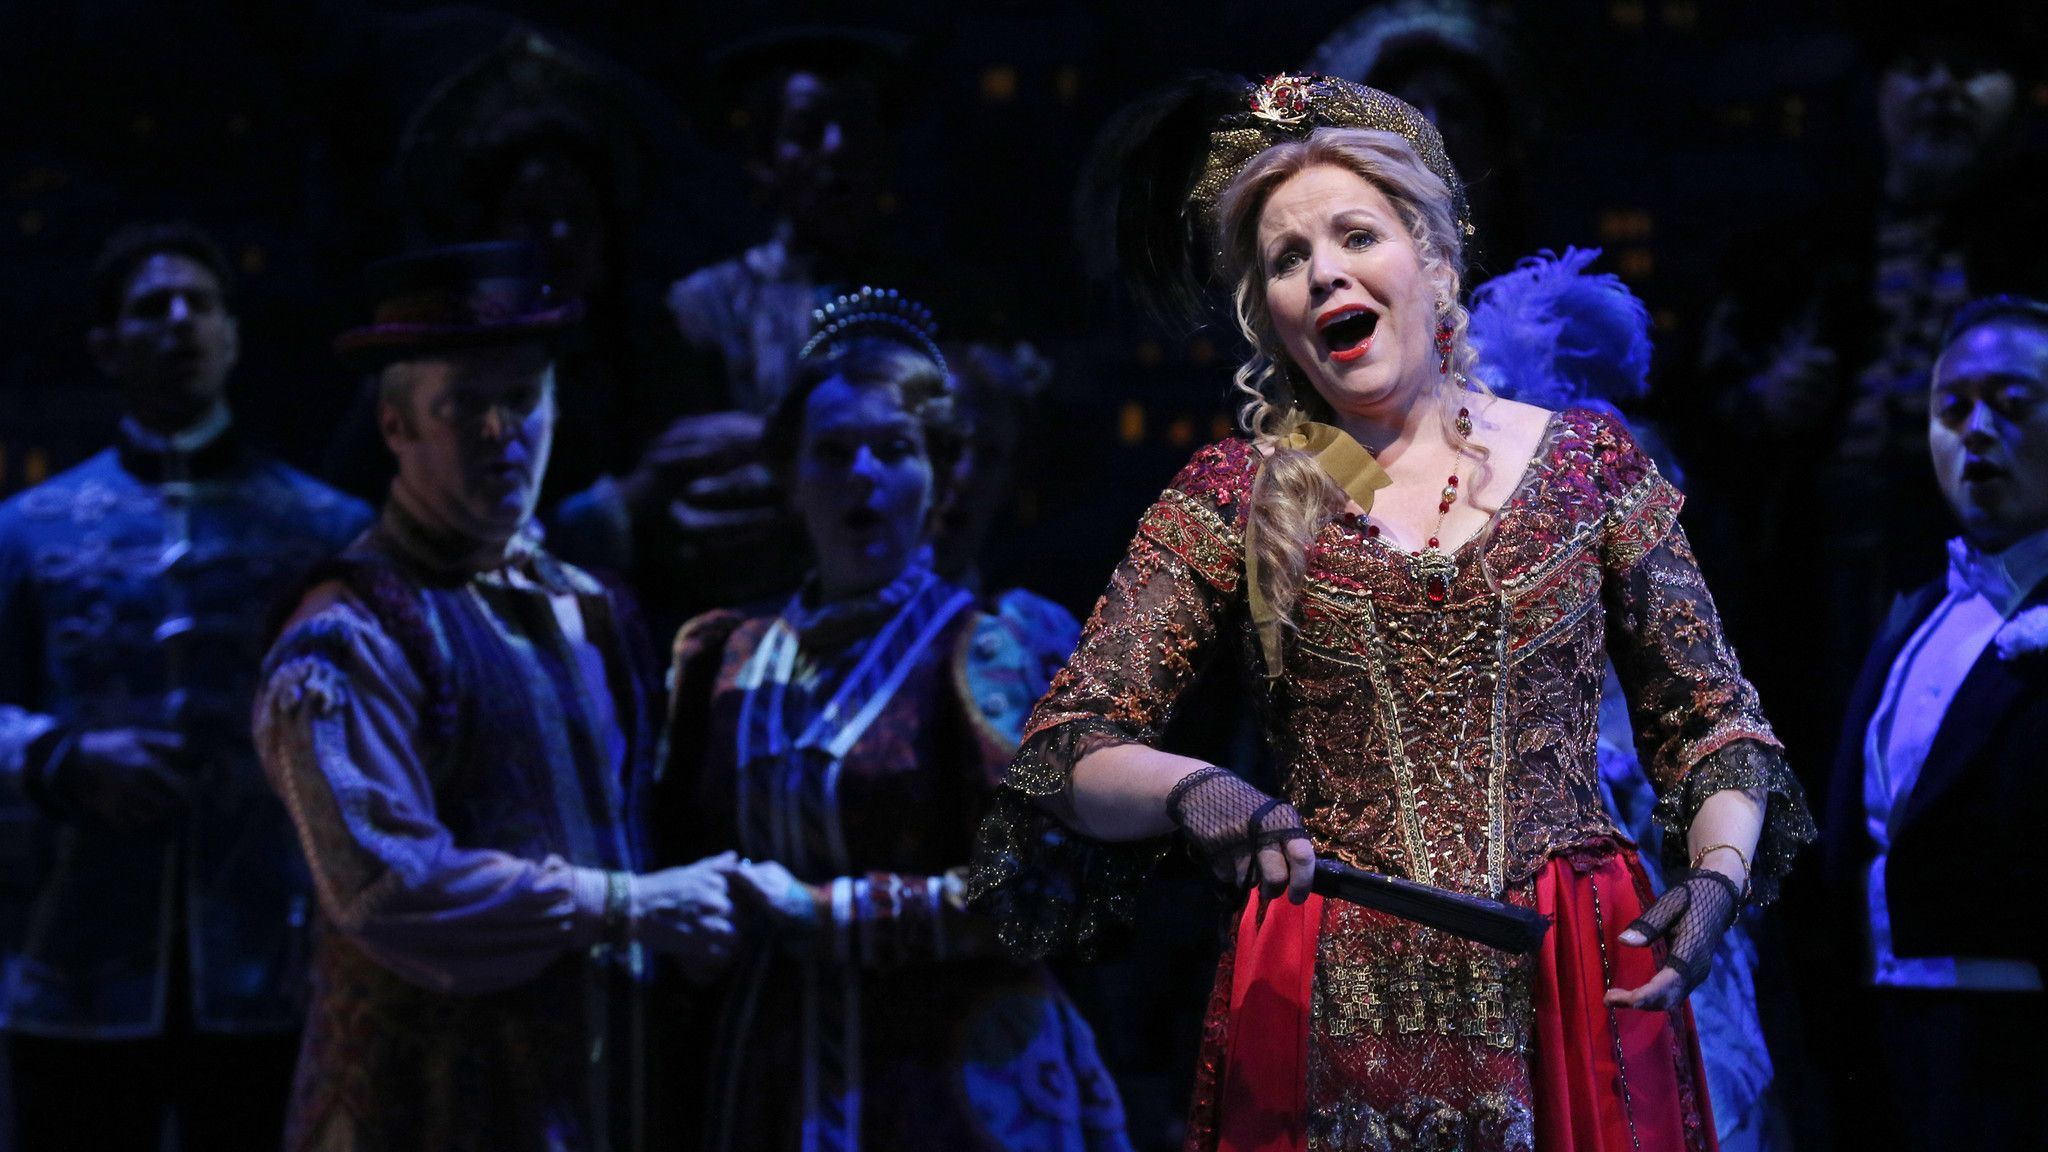 Renee Fleming to star in revered 'Light in the Piazza' in Chicago